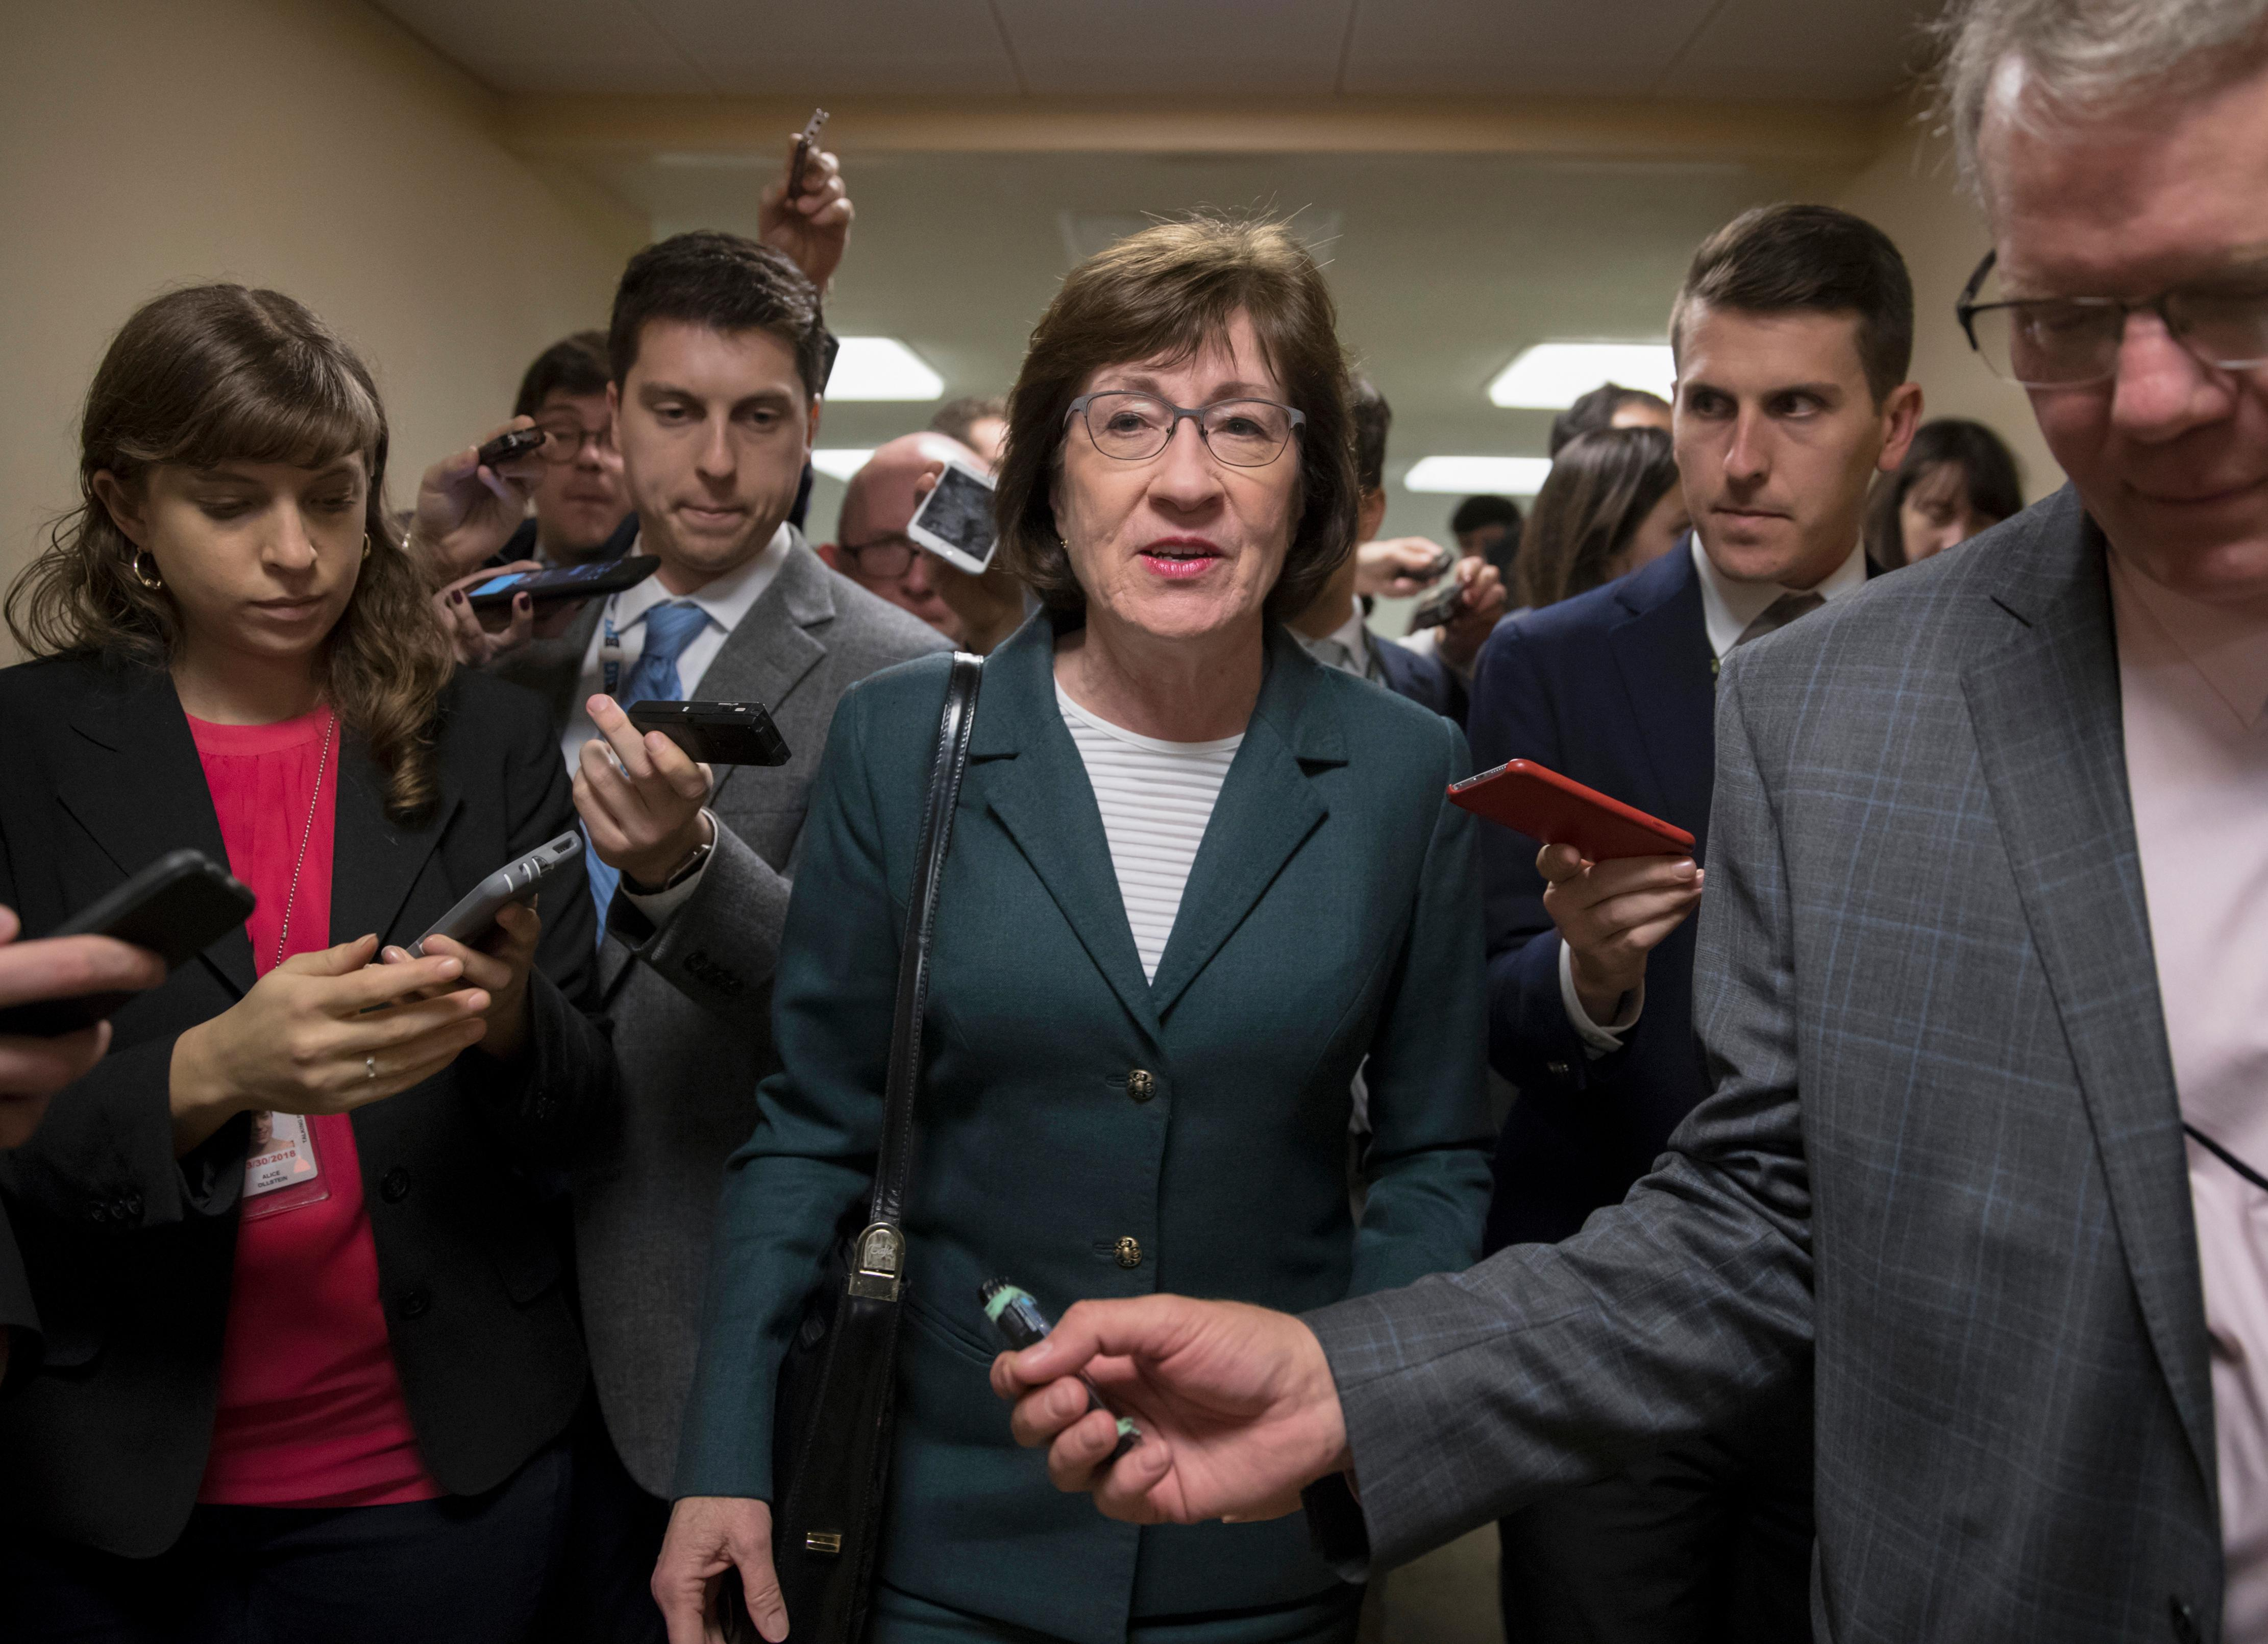 With reporters looking for updates, Sen. Susan Collins, R-Maine, and other senators rush to the chamber to vote on amendments as the Republican leadership works to craft their sweeping tax bill, on Capitol Hill in Washington, Thursday, Nov. 30, 2017. (AP Photo/J. Scott Applewhite)